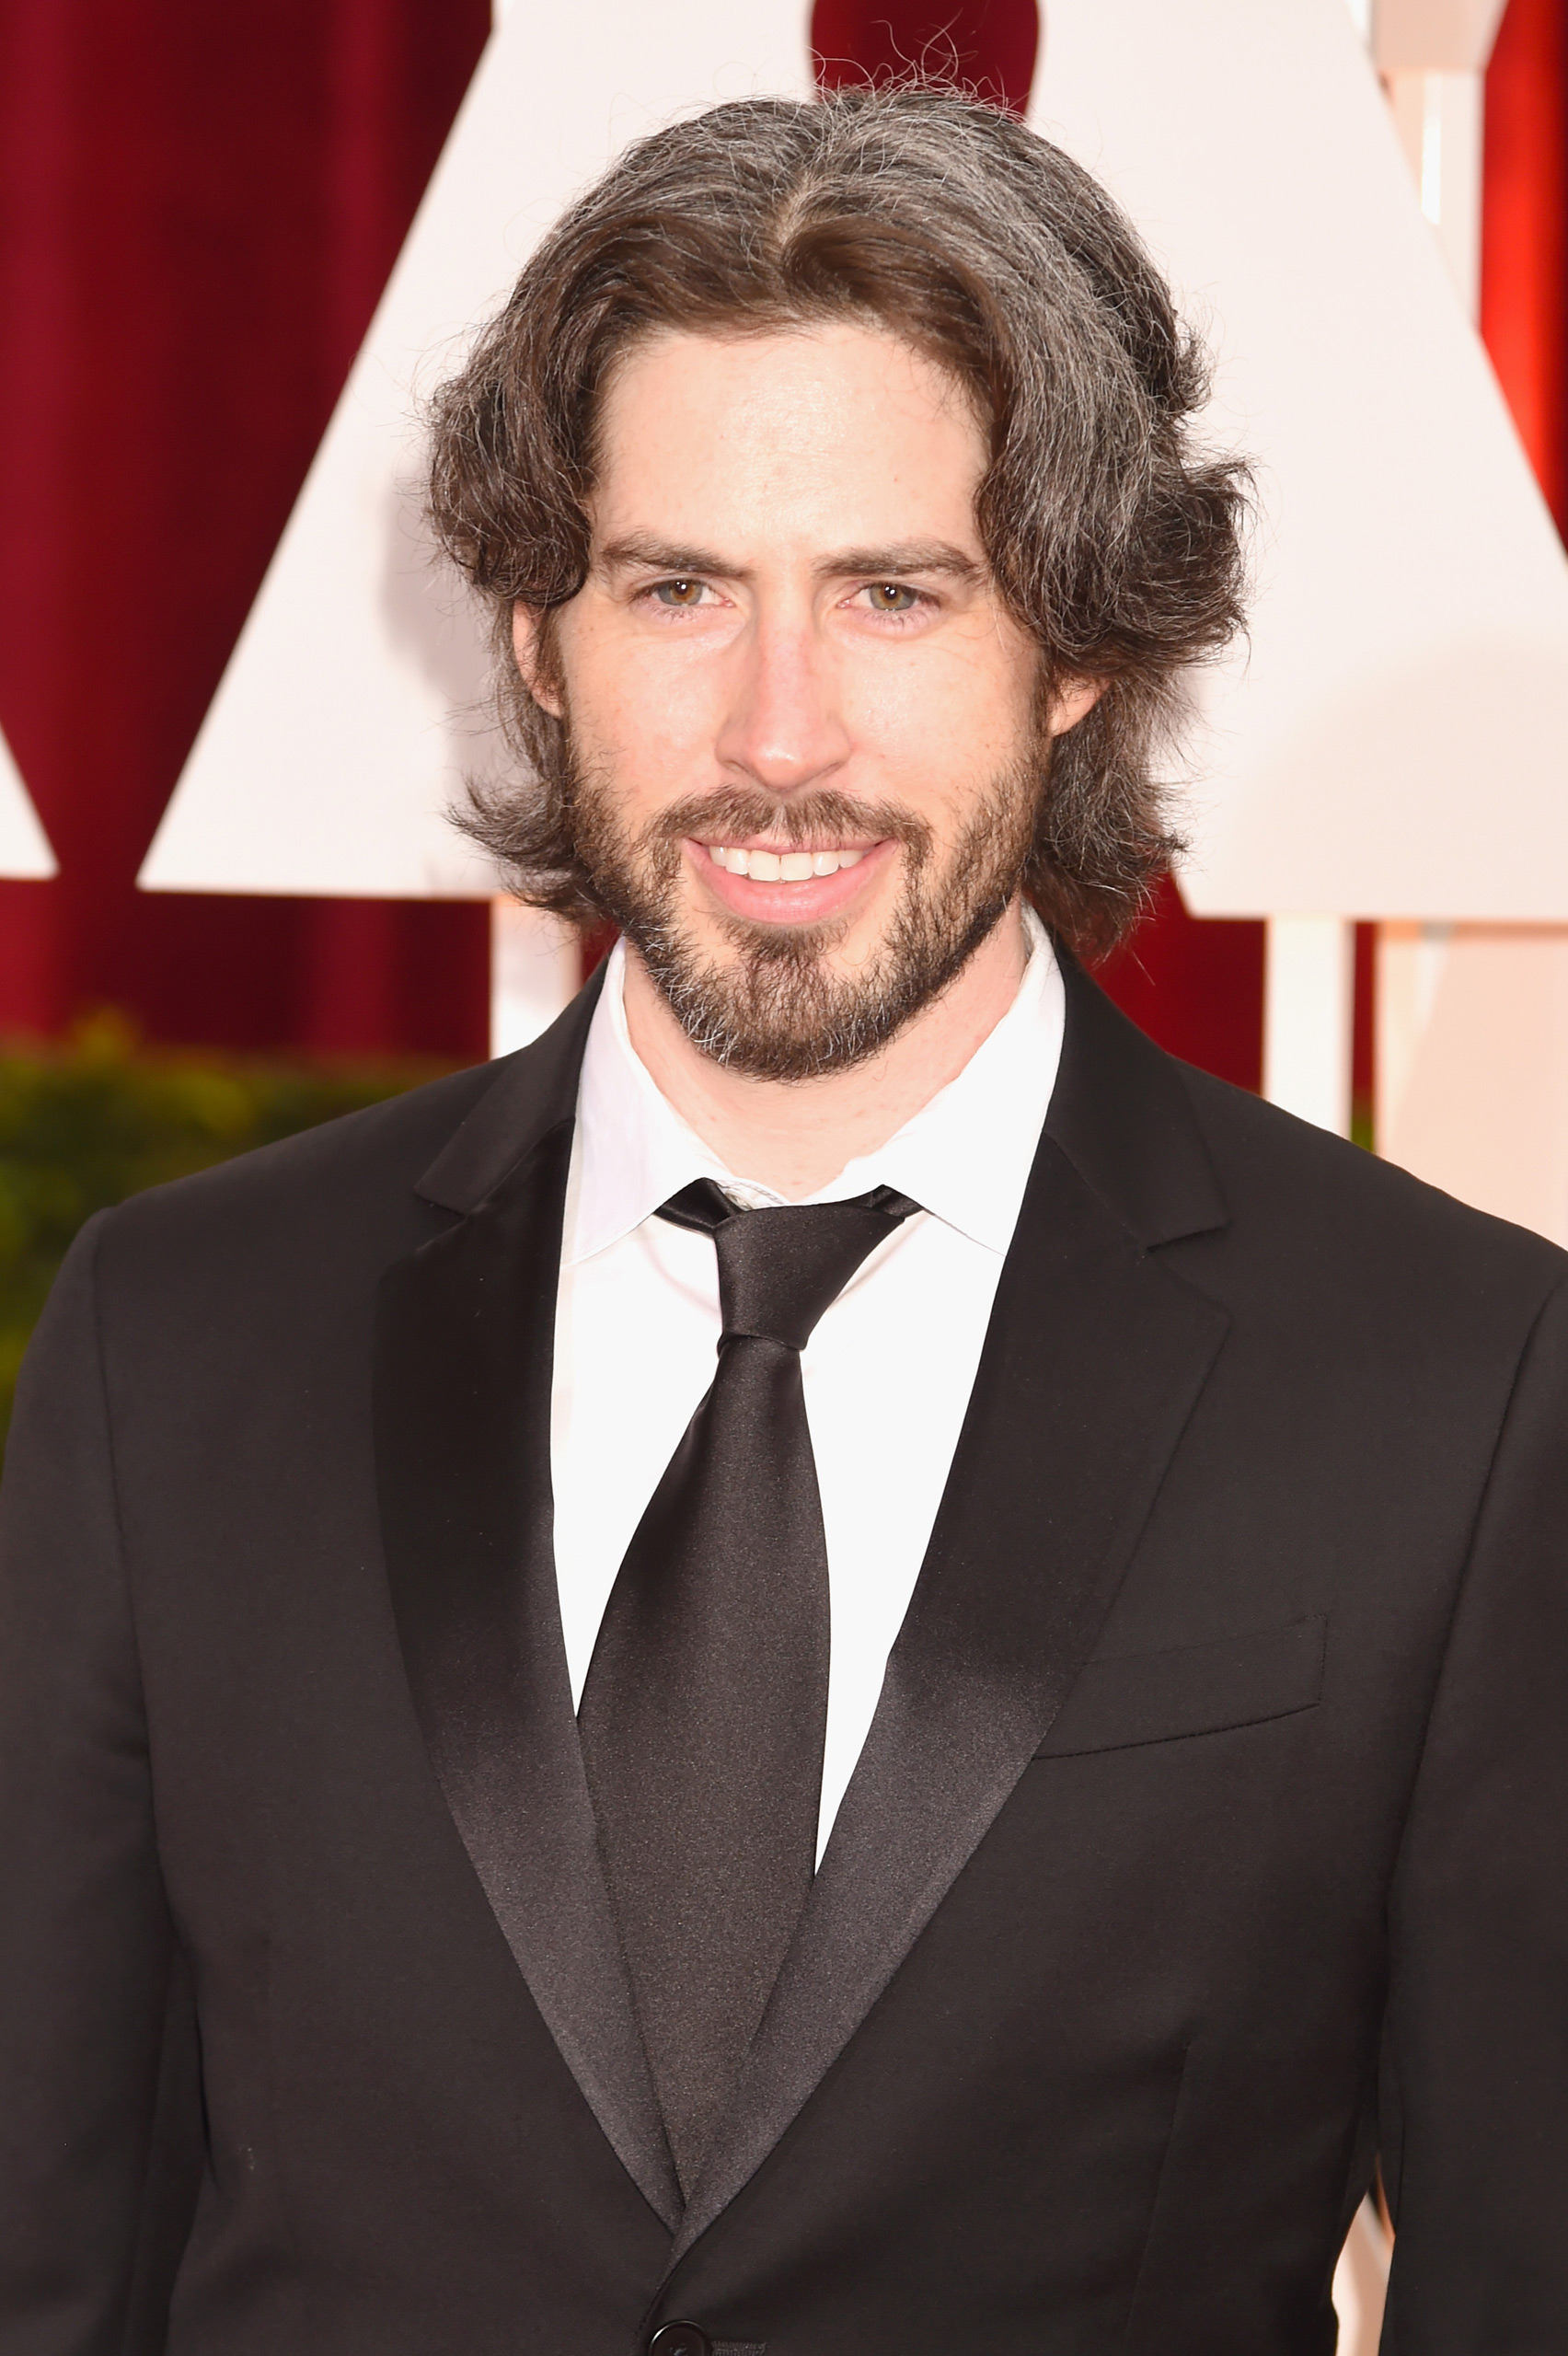 Jason Reitman attends the 87th Annual Academy Awards on Feb. 22, 2015 in Hollywood, Calif.